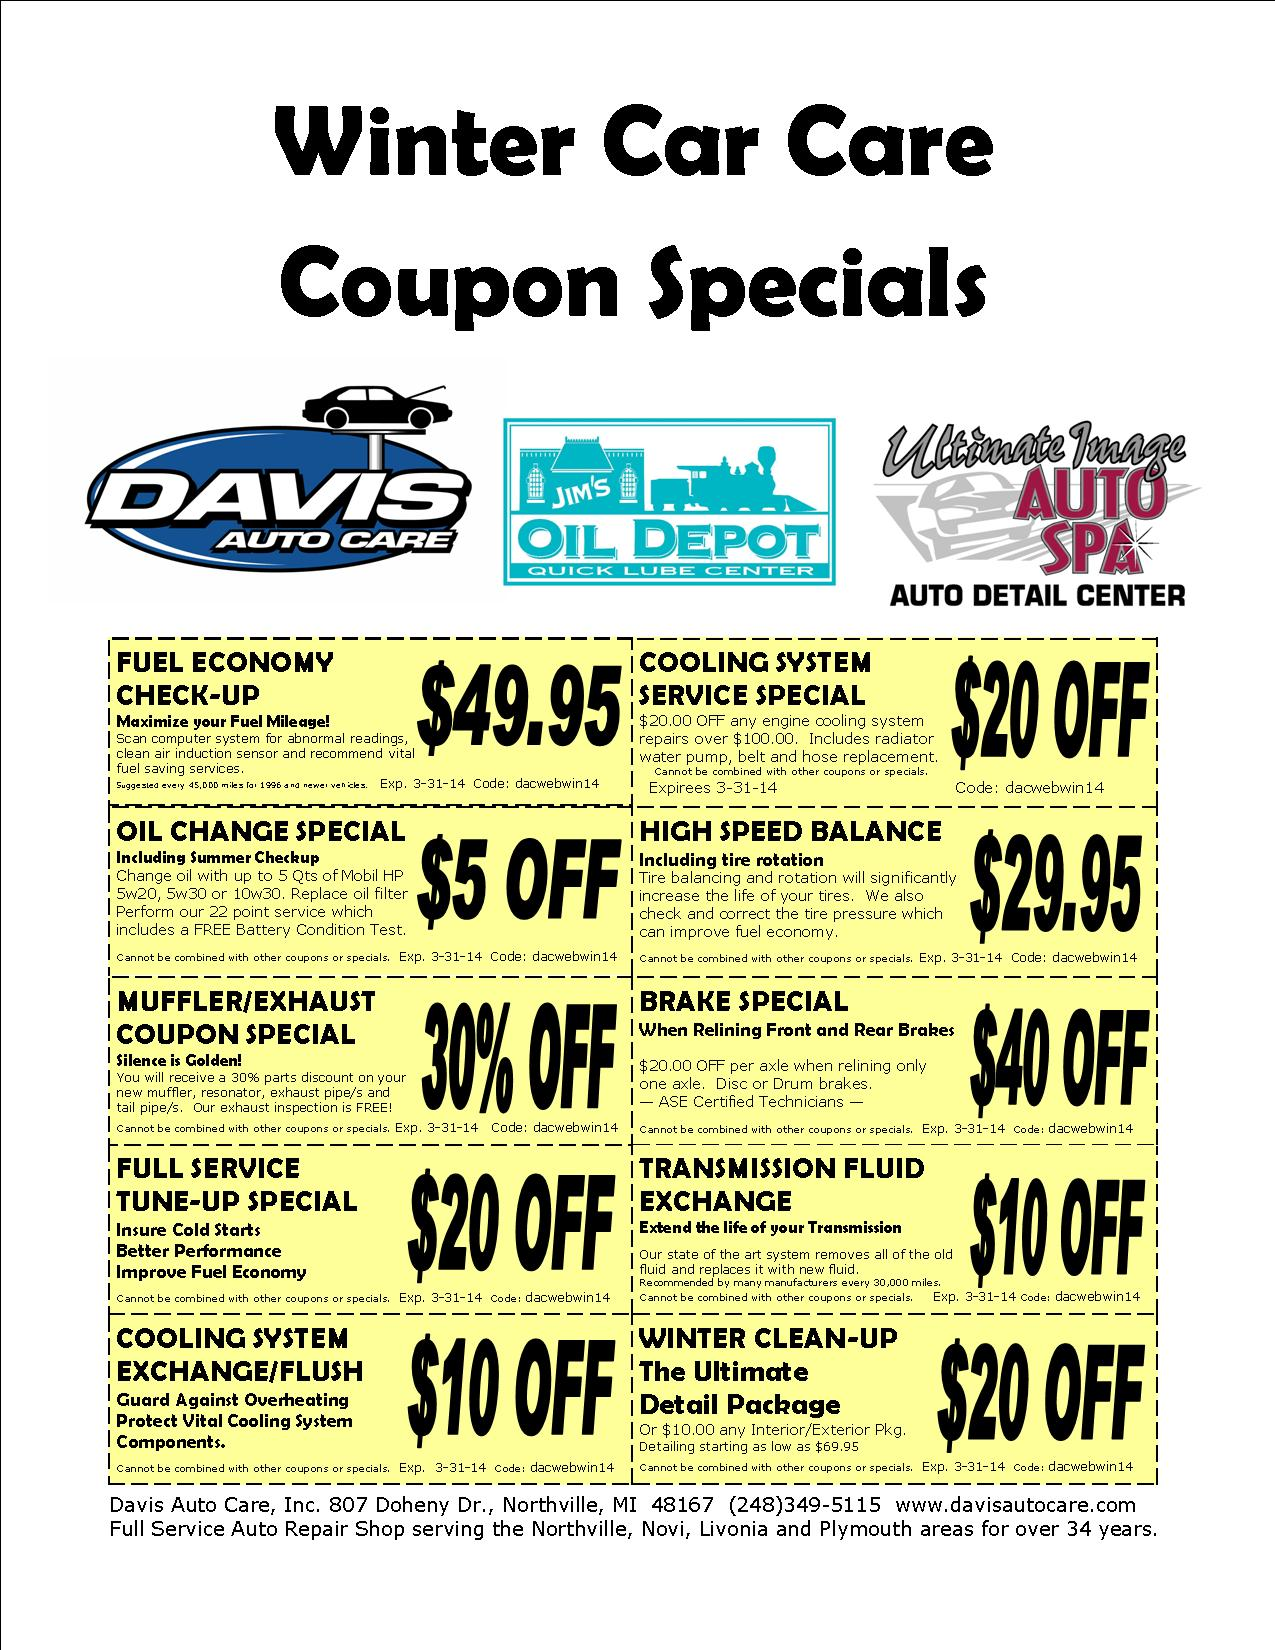 Auto repair and service coupon specials davis auto care for Honda oil change printable coupon